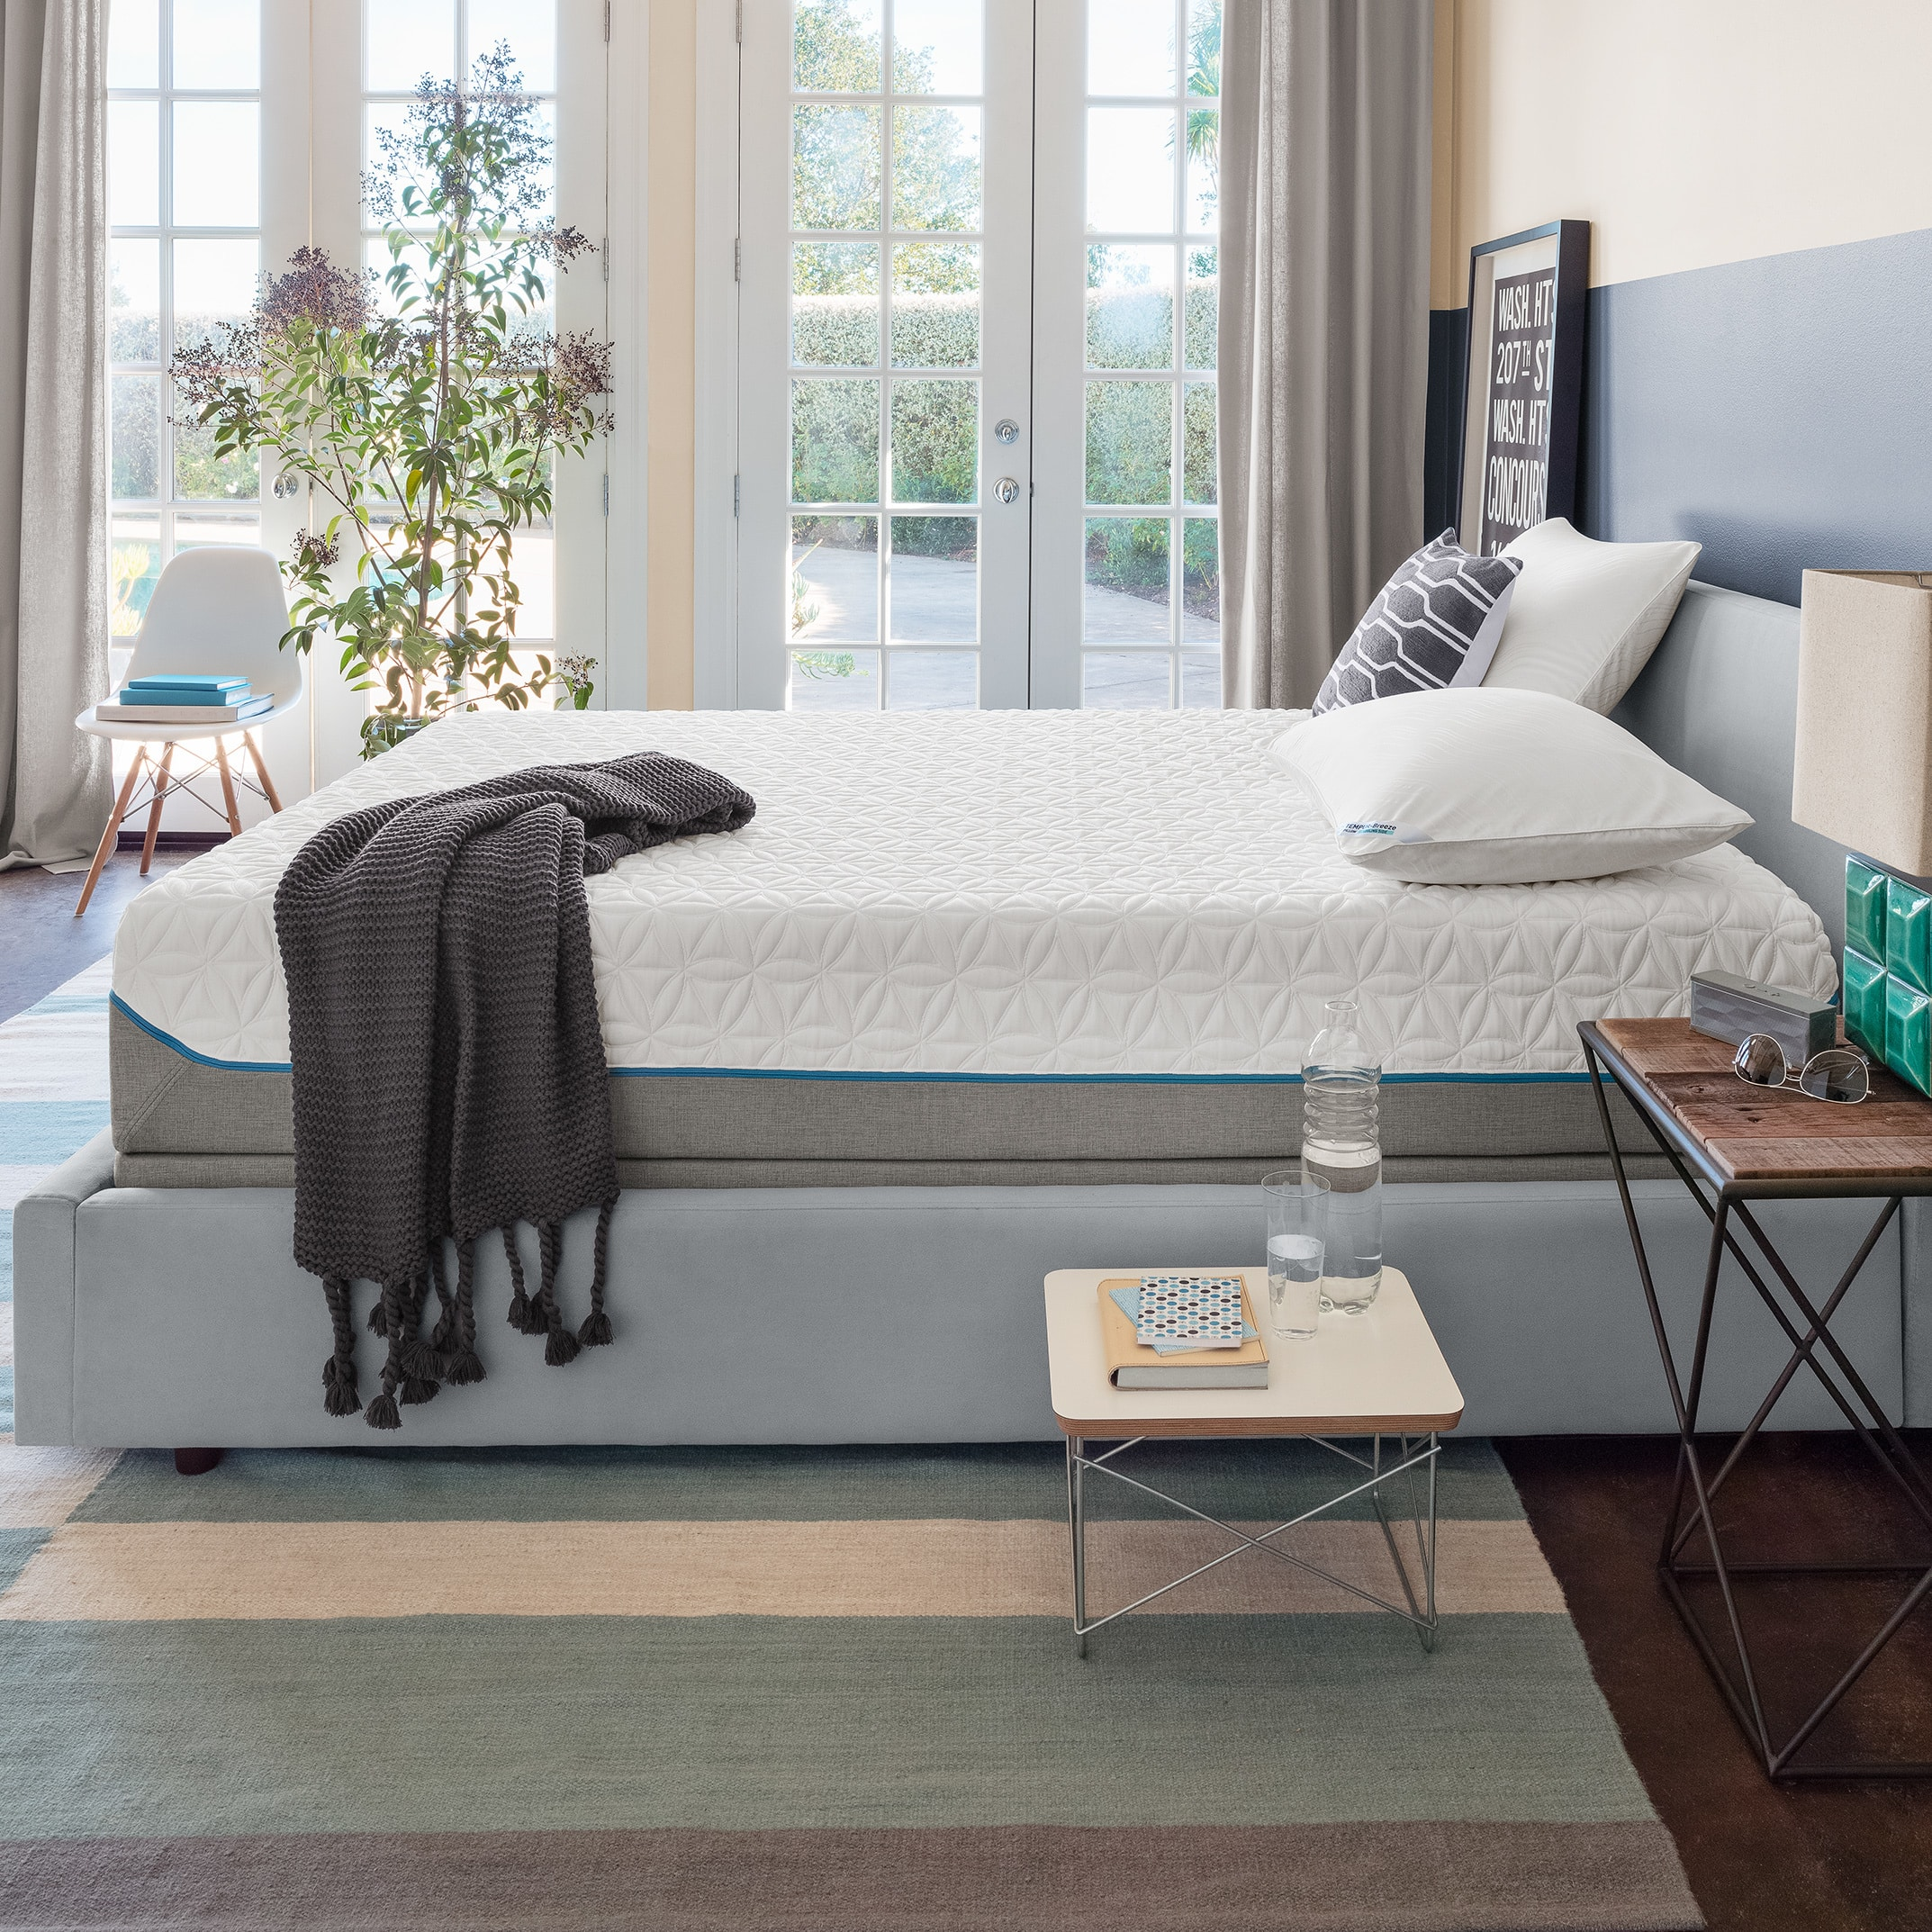 Buy Mattresses By Size, Type, Brands Online At Overstock